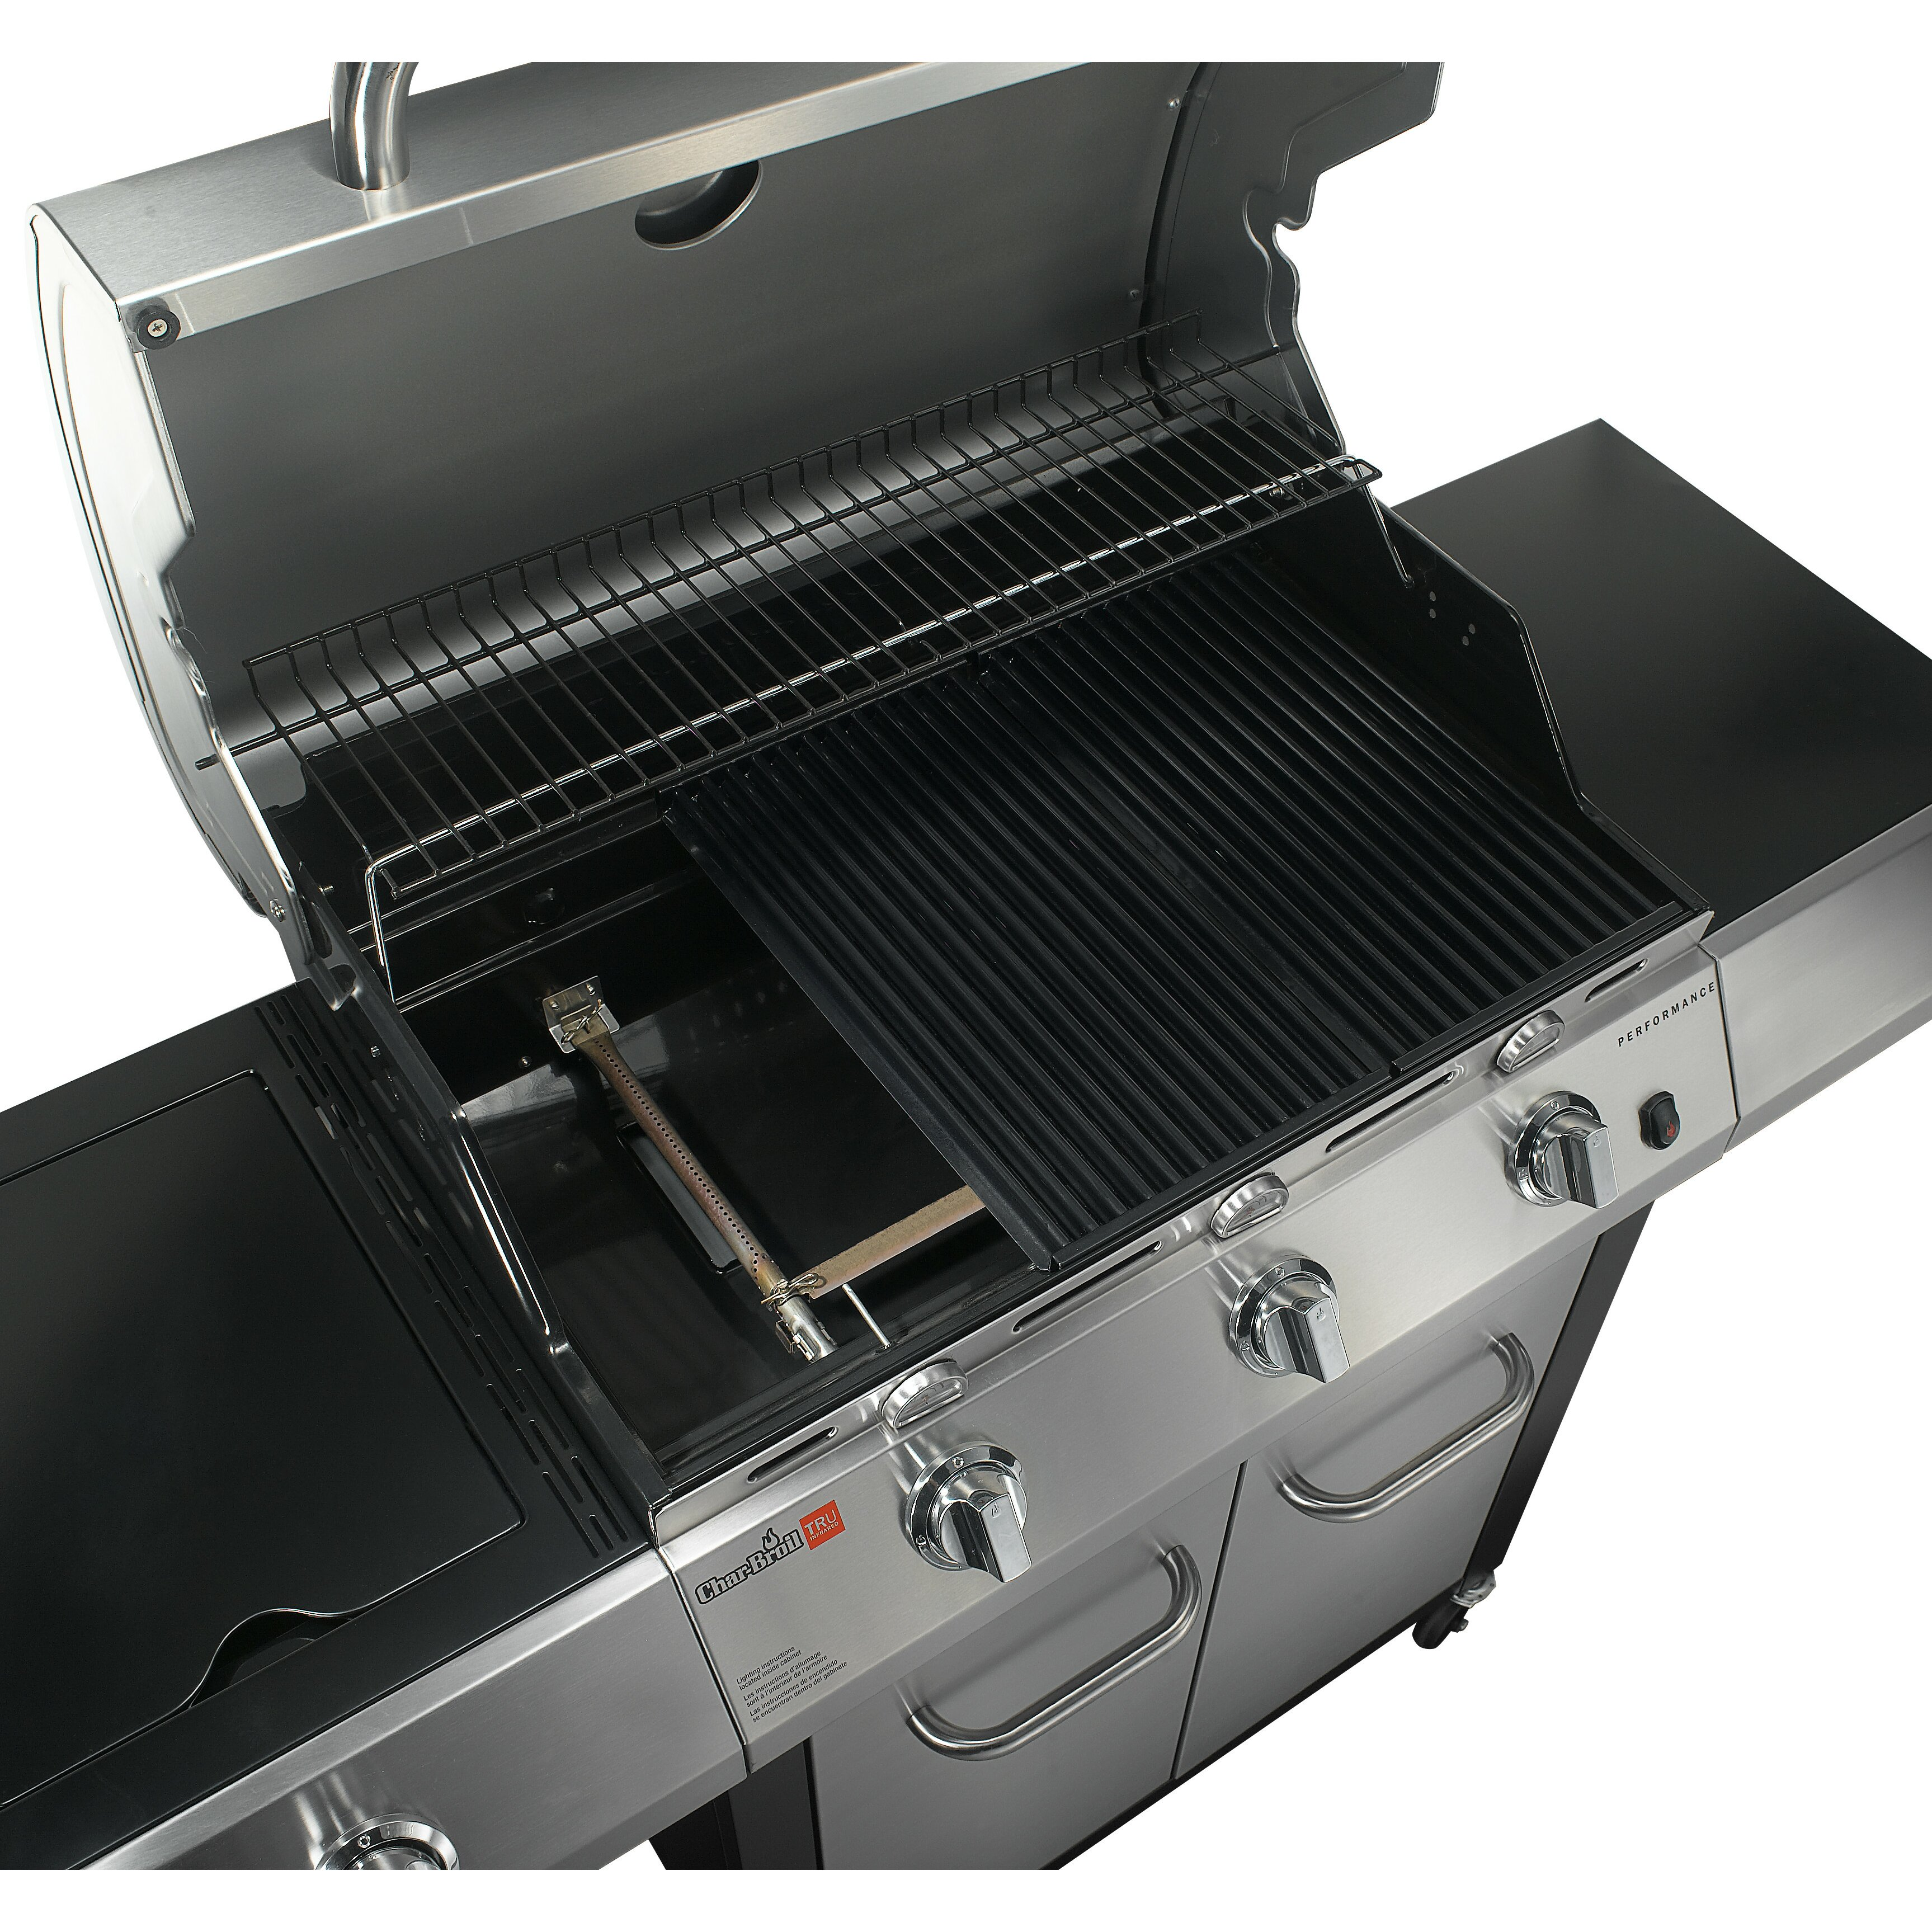 Charbroil Tru Infrared Performance 3 Burner Gas Grill With